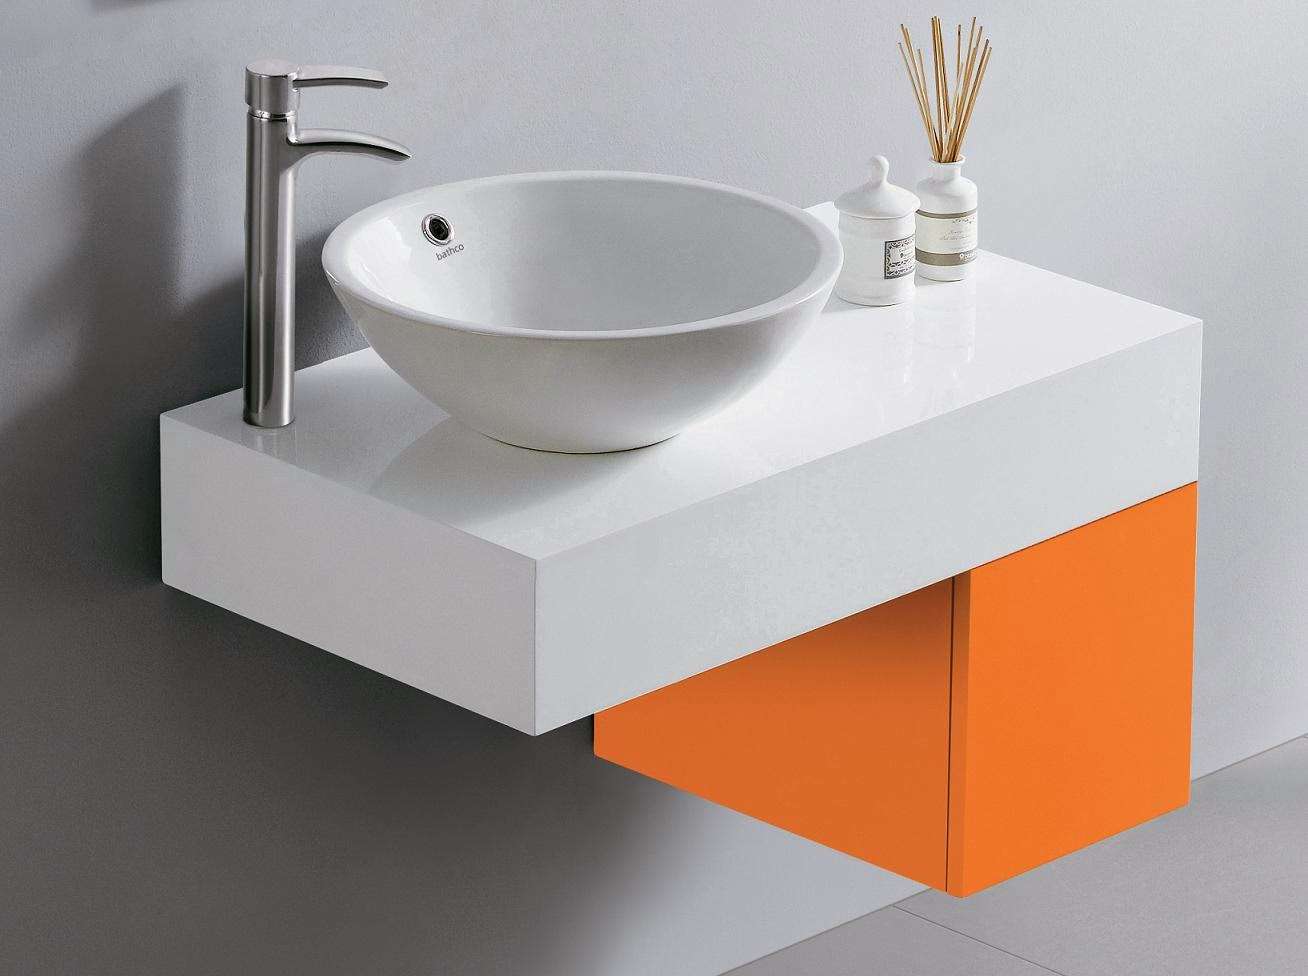 Decoracional muebles de ba o encimeras a todo color for Accesorios bano color naranja